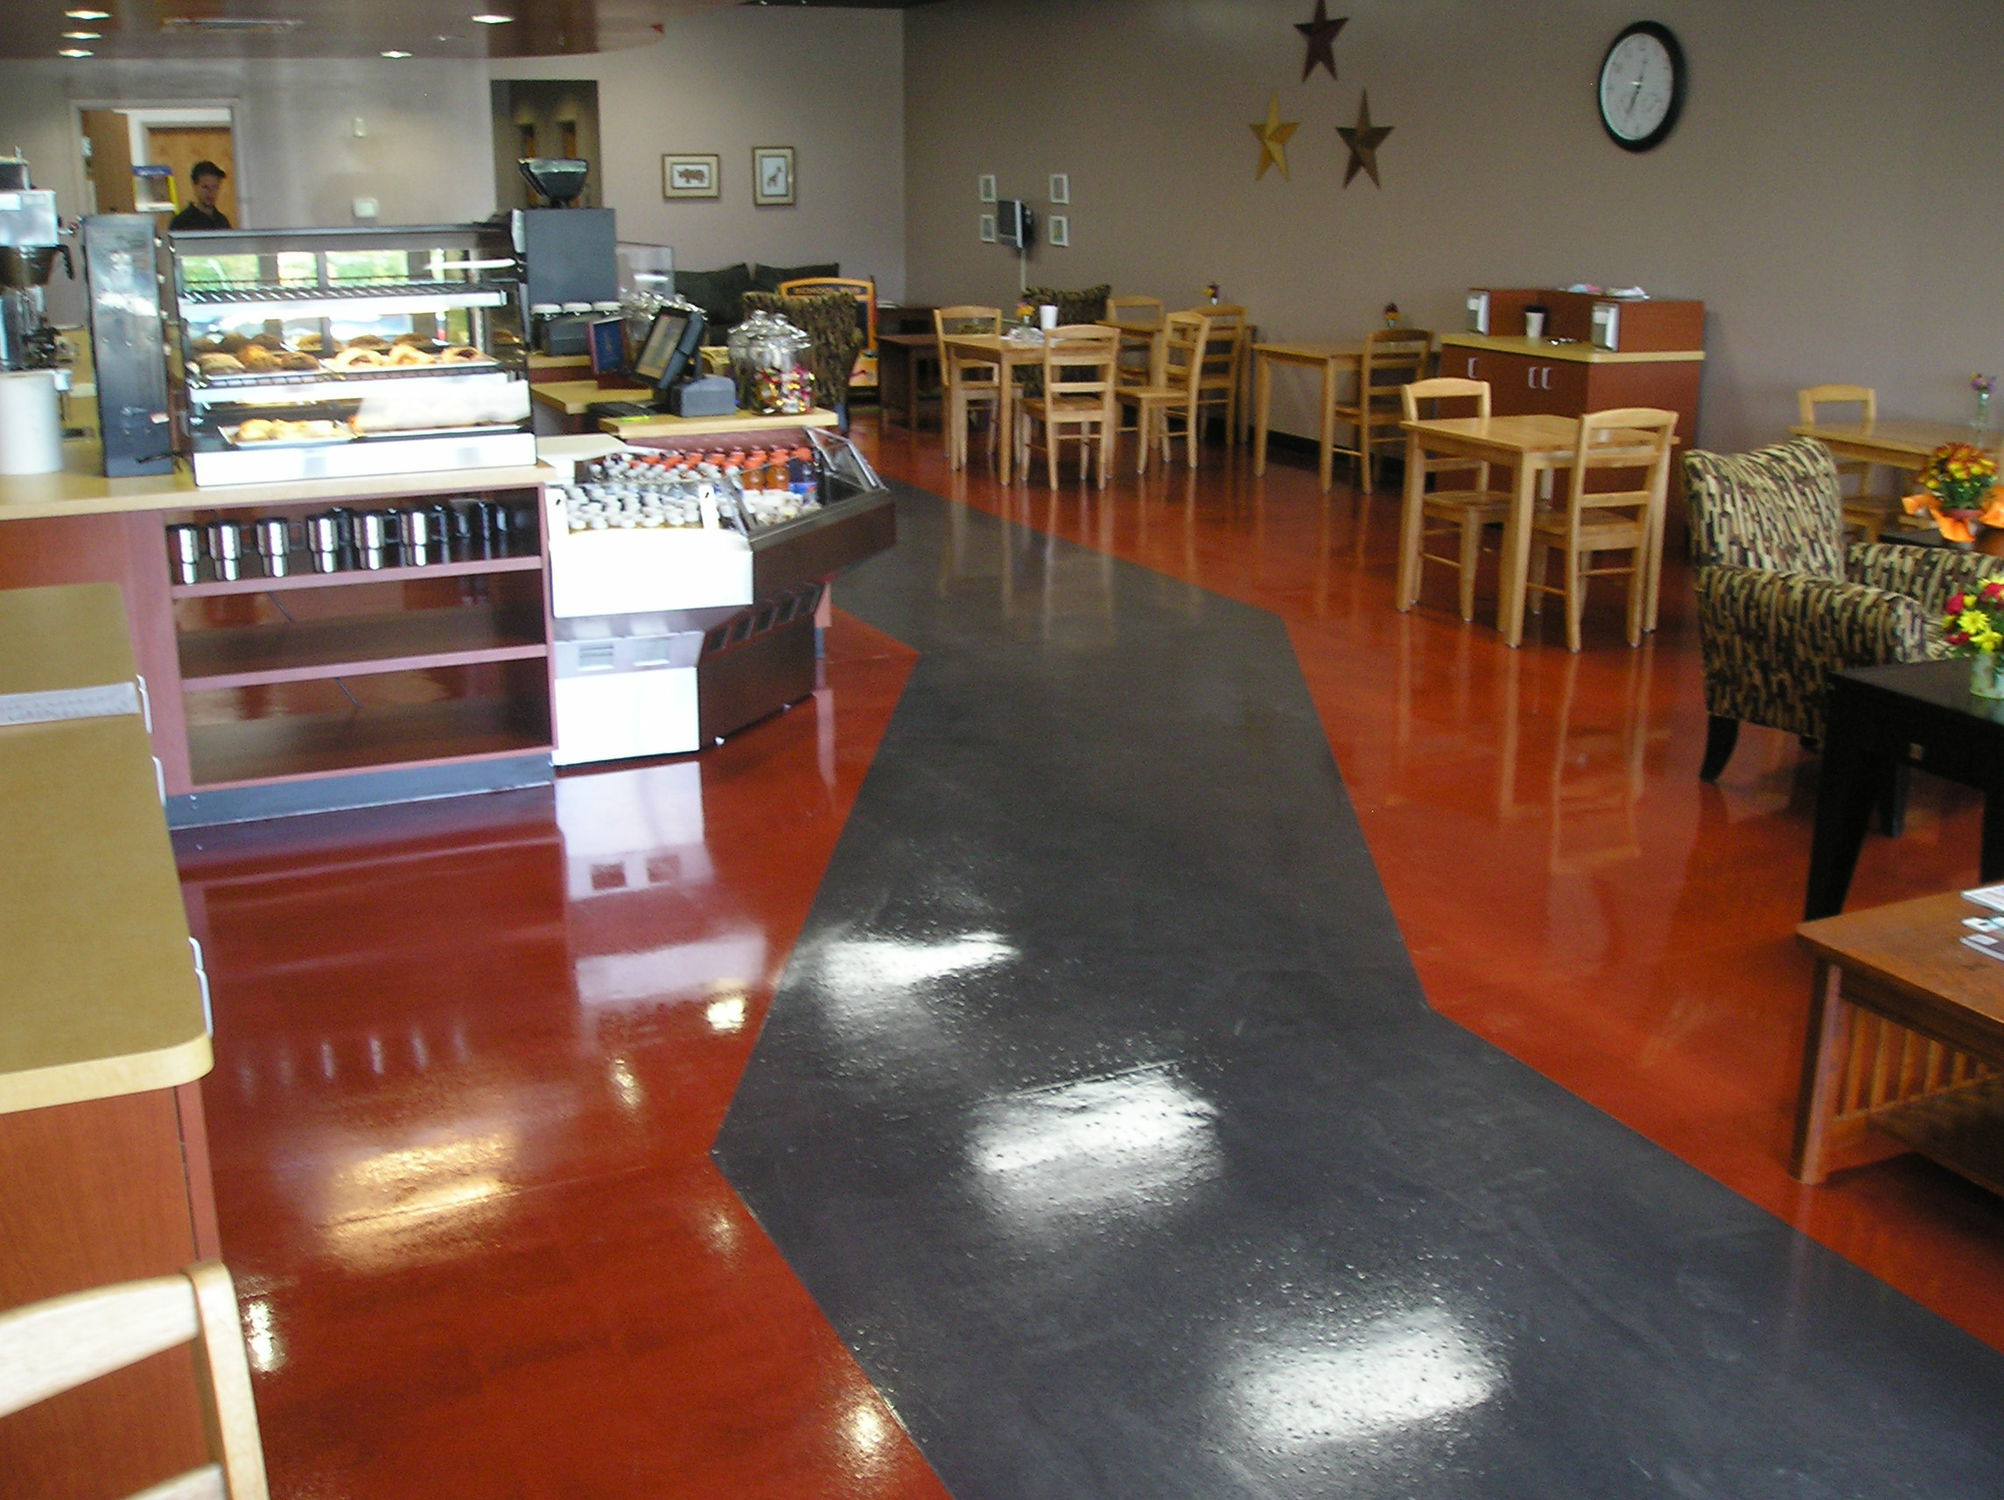 private cars importance sports prep s foot metallic store profile the it high owned owner img residence is surface min memorabilia of floors to flooring by client square used charcoal this epoxy a for decorative floor